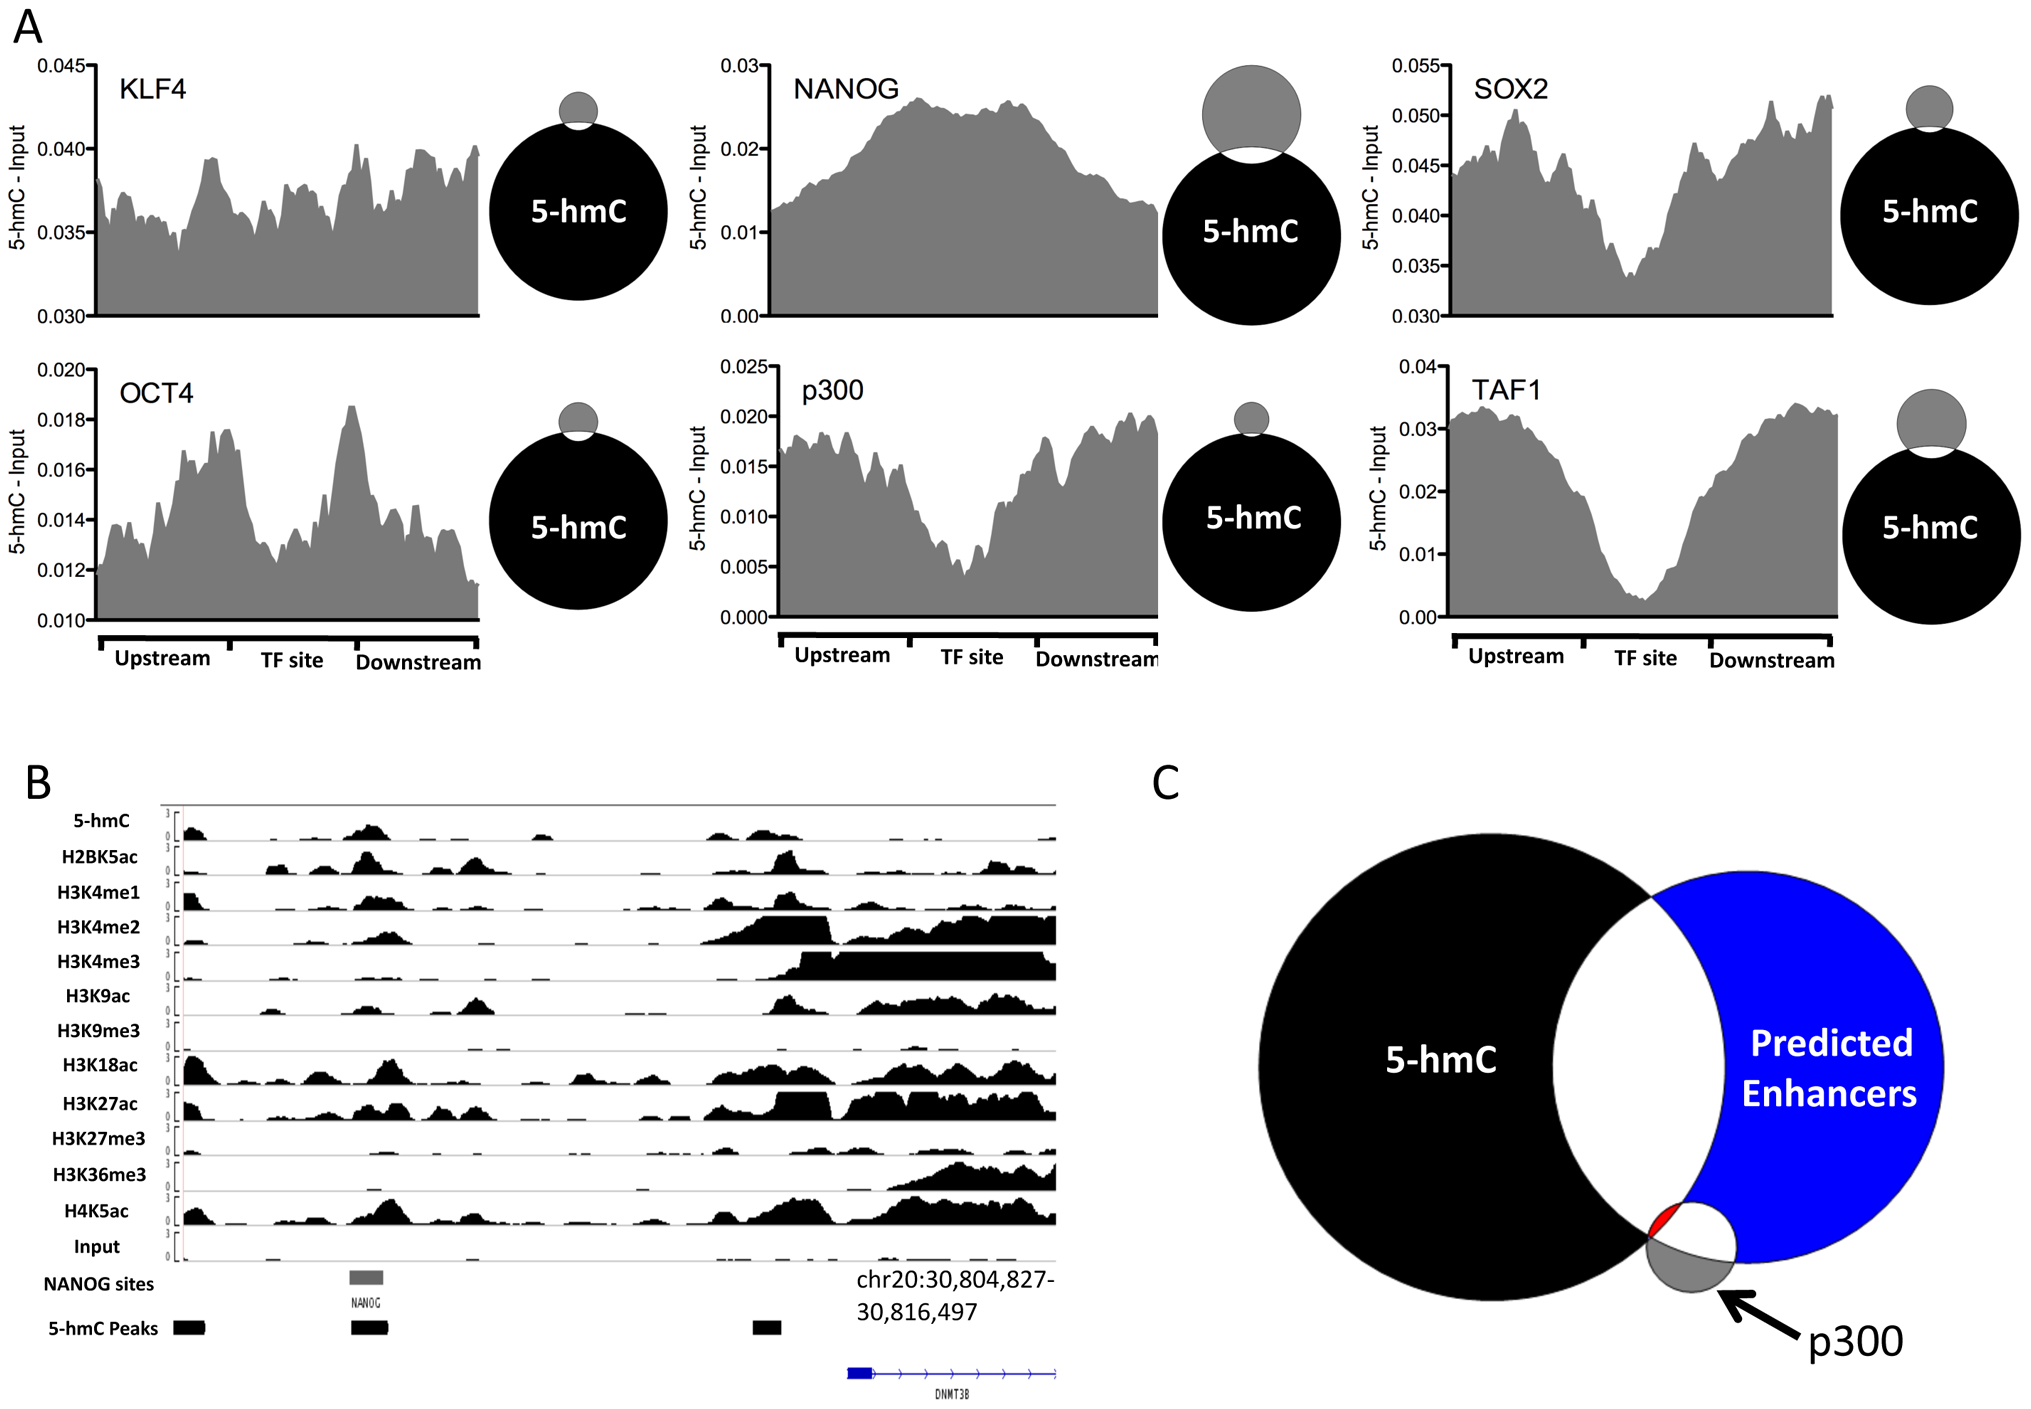 5-hmC at pluripotency-associated core transcription factor binding sites in human H1 ES cells.